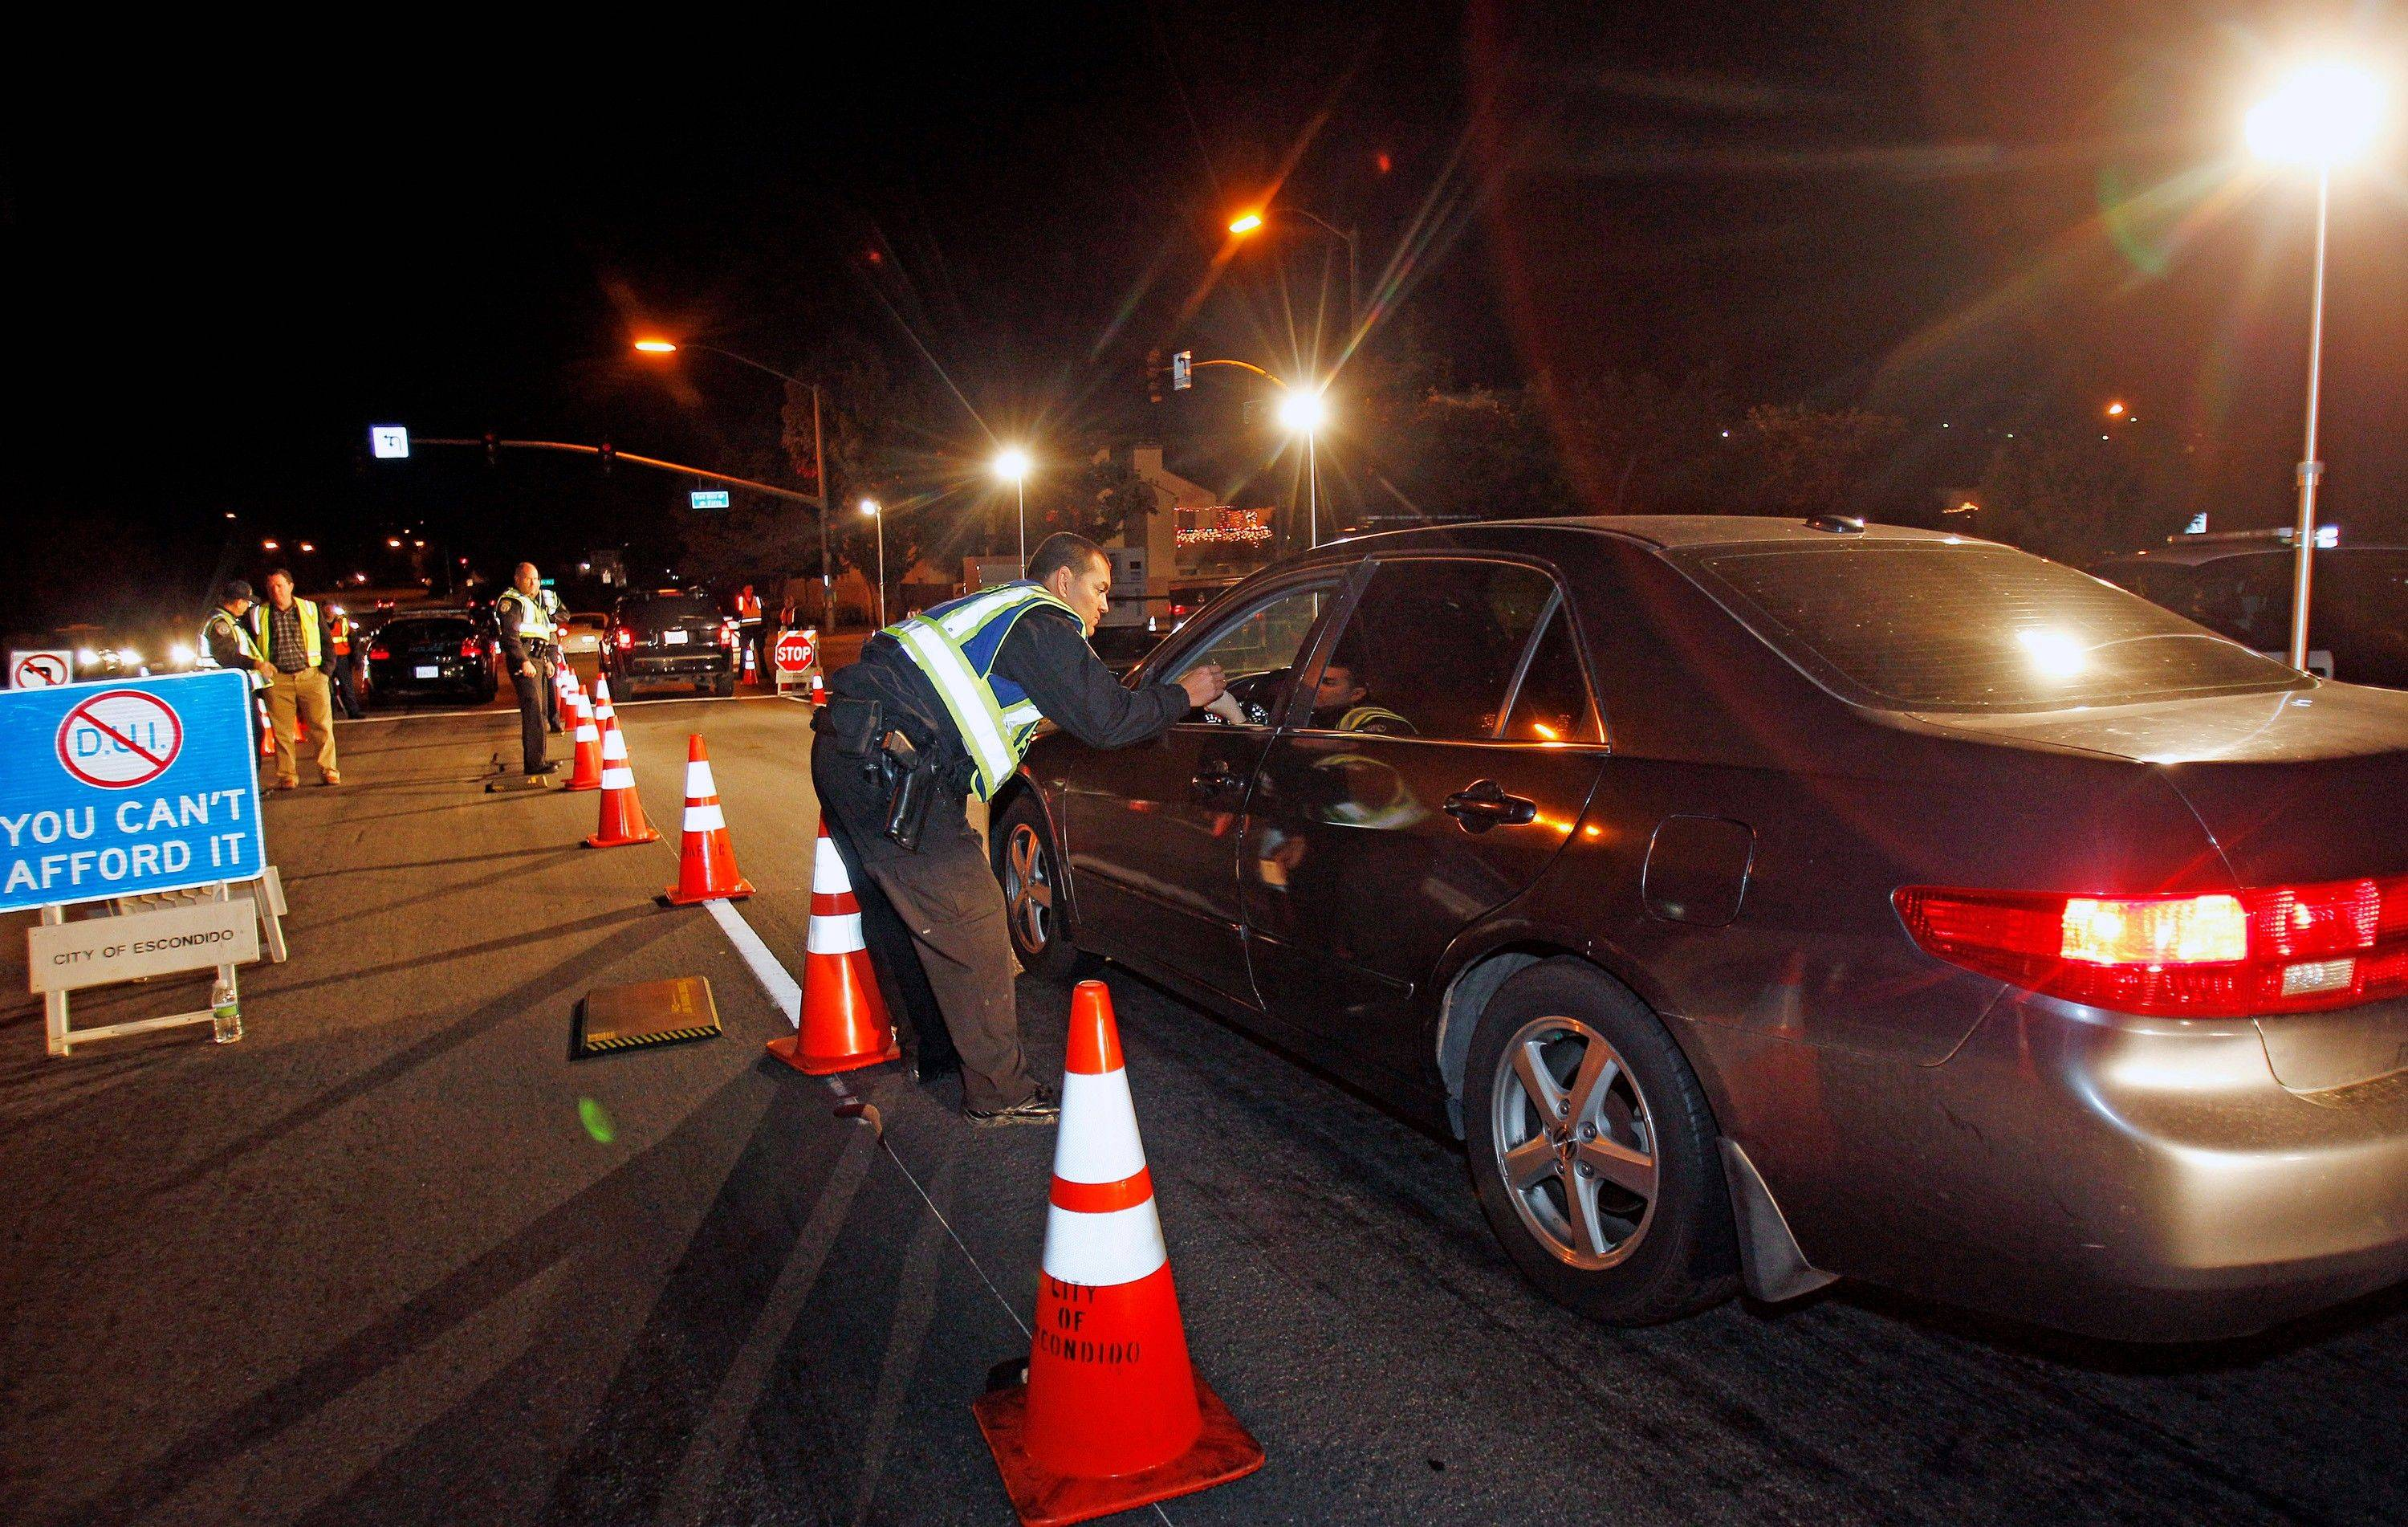 Police officers check drivers at a sobriety checkpoint in Escondido, Calif., on Dec. 16. St